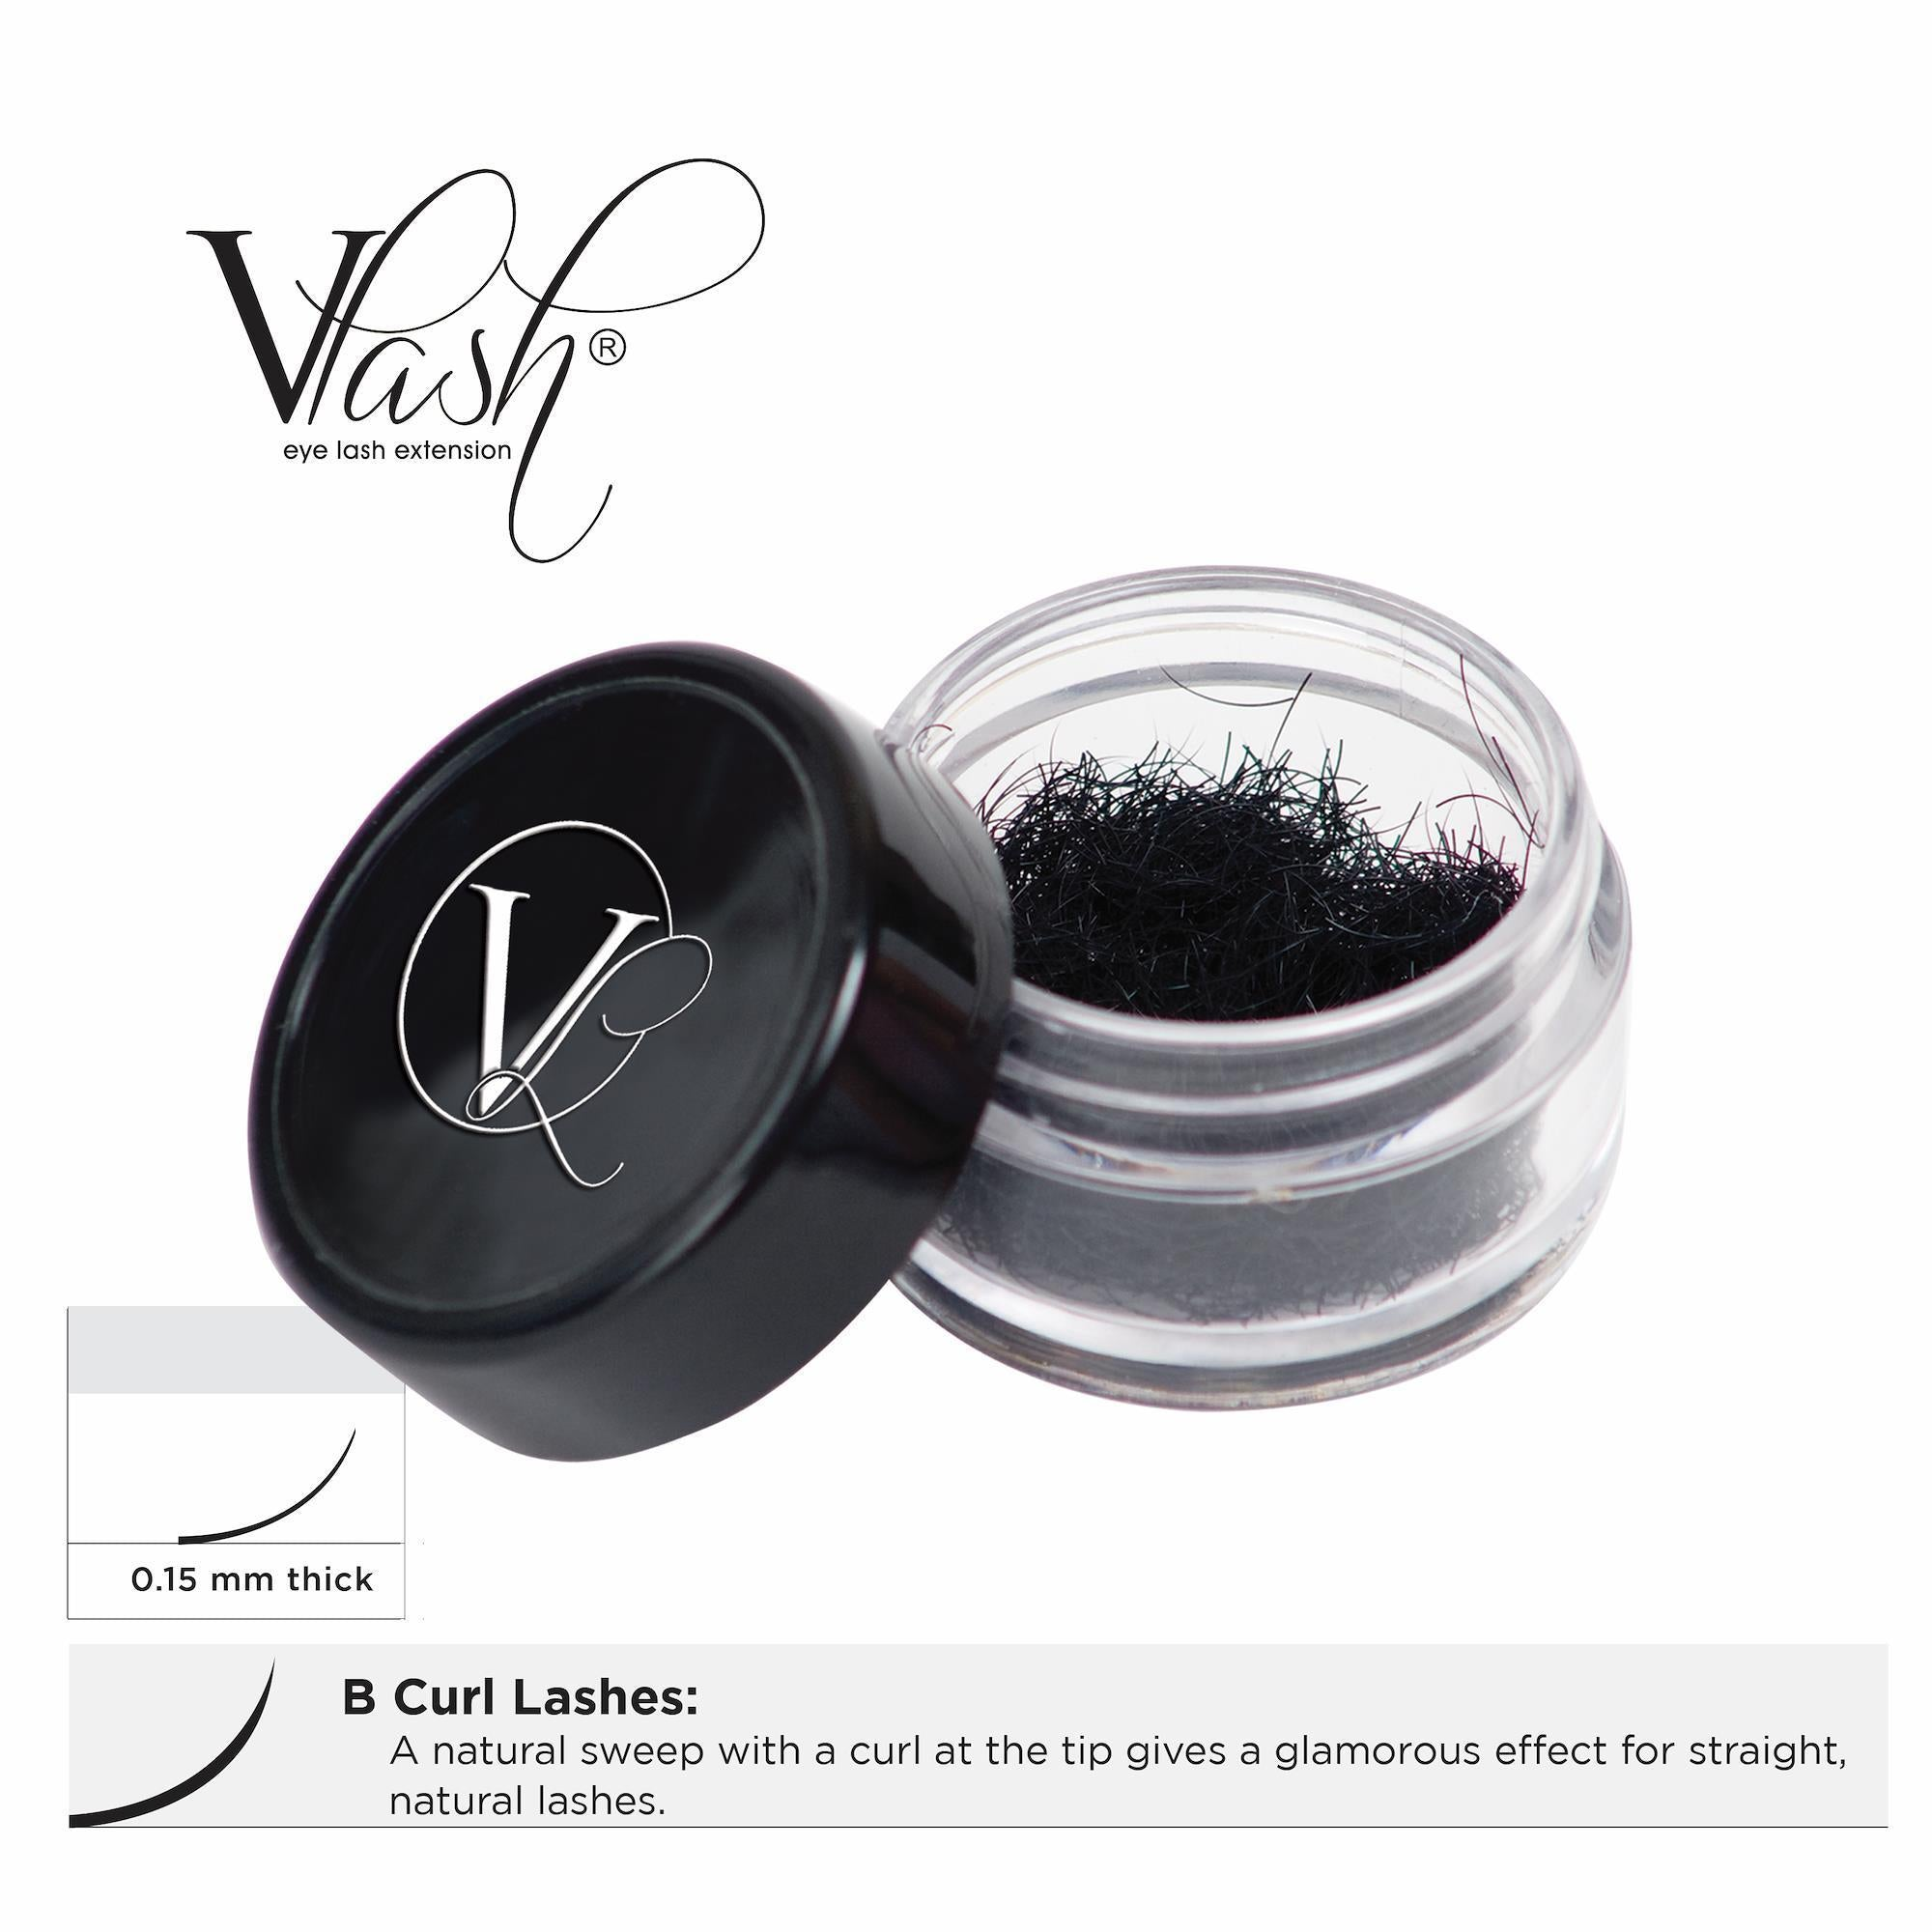 Lash Extensions, Strips, Acces 10mm VLash B Curl Jar Lashes / .15mm thick